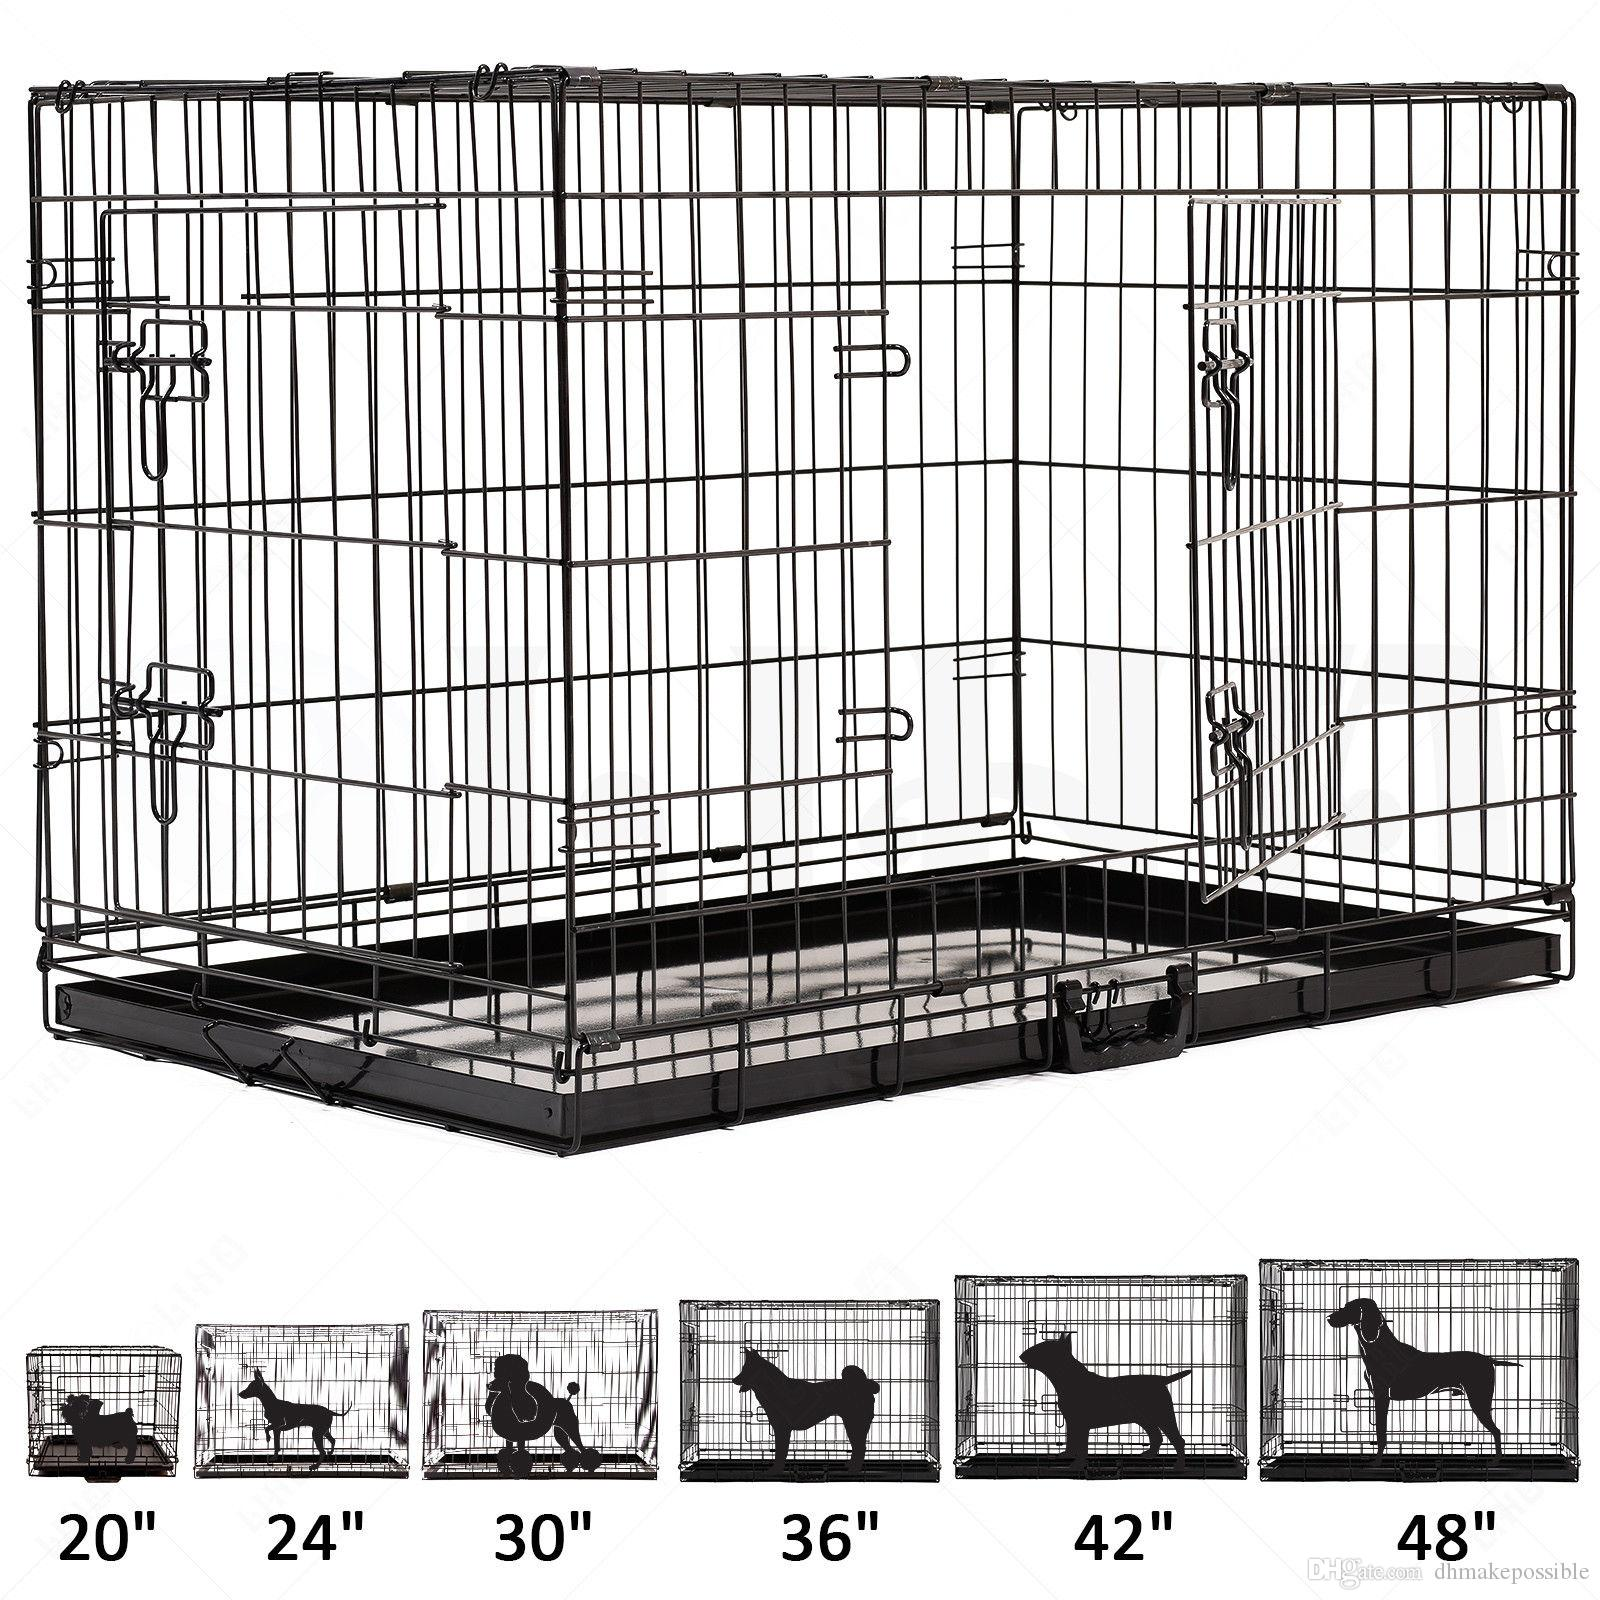 Marvelous 2019 42 2 Doors Wire Folding Pet Crate Dog Cat Cage Suitcase Kennel Playpen With Tray From Dhmakepossible 40 49 Dhgate Com Machost Co Dining Chair Design Ideas Machostcouk